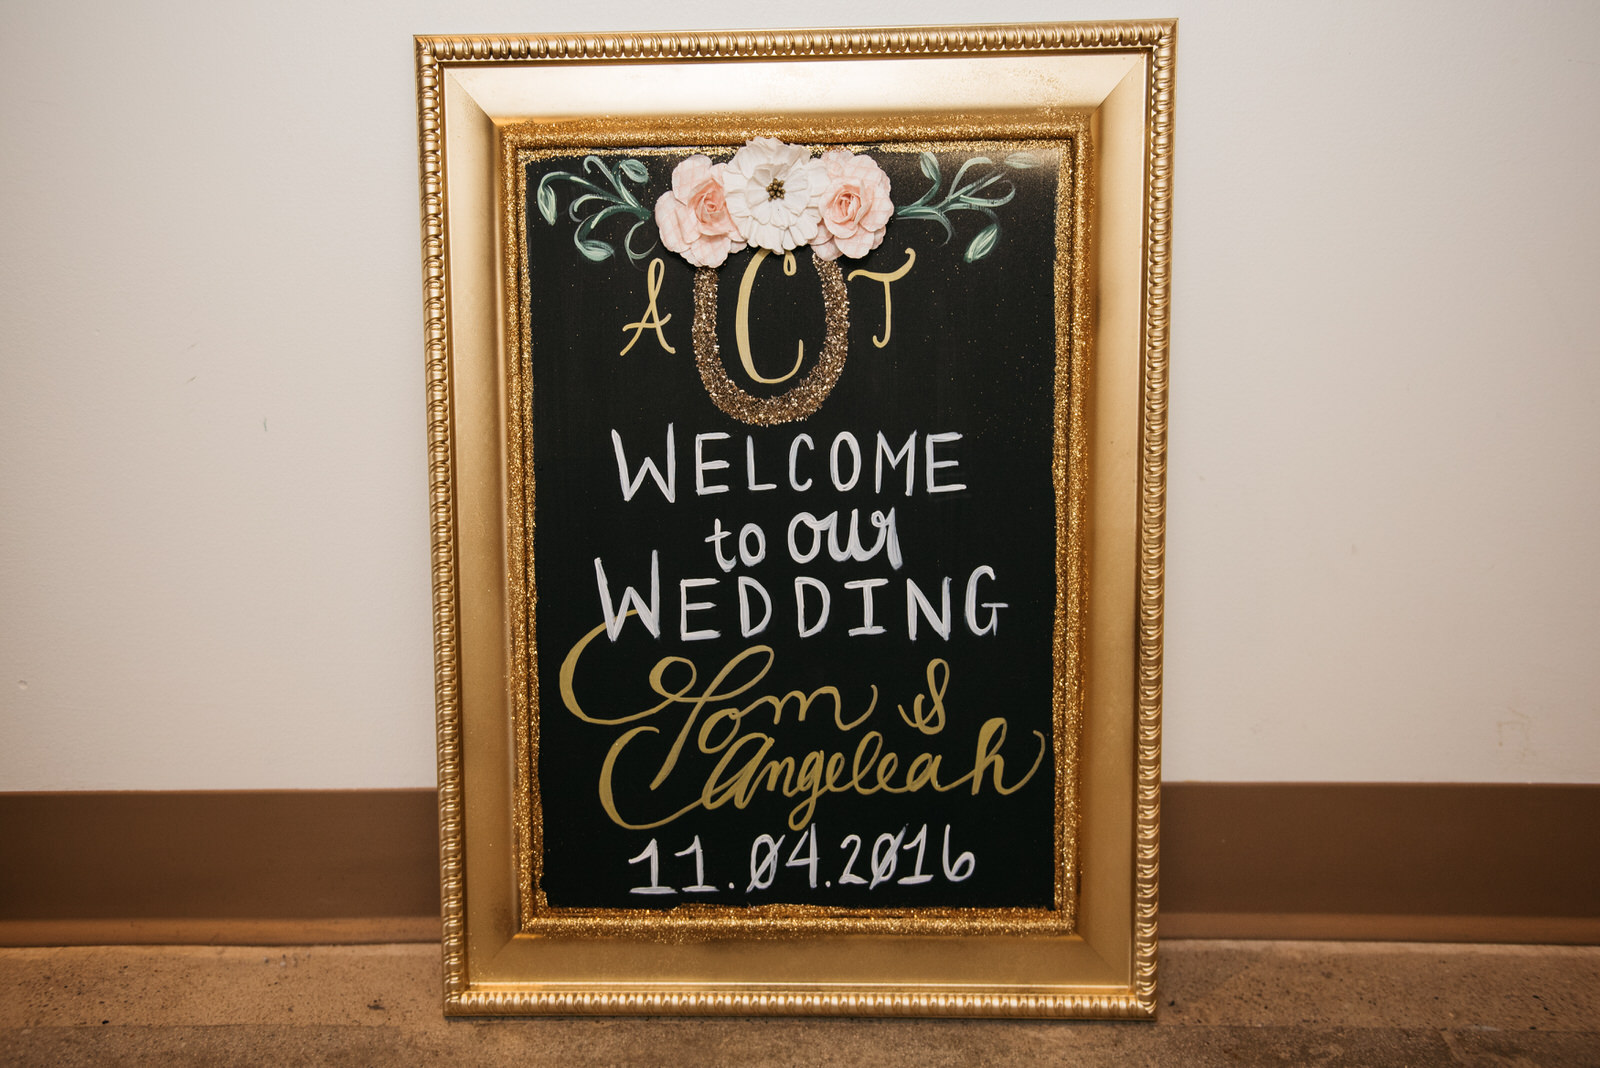 hilton_garden_inn_southpointe_pittsburgh_weddings_9.jpg